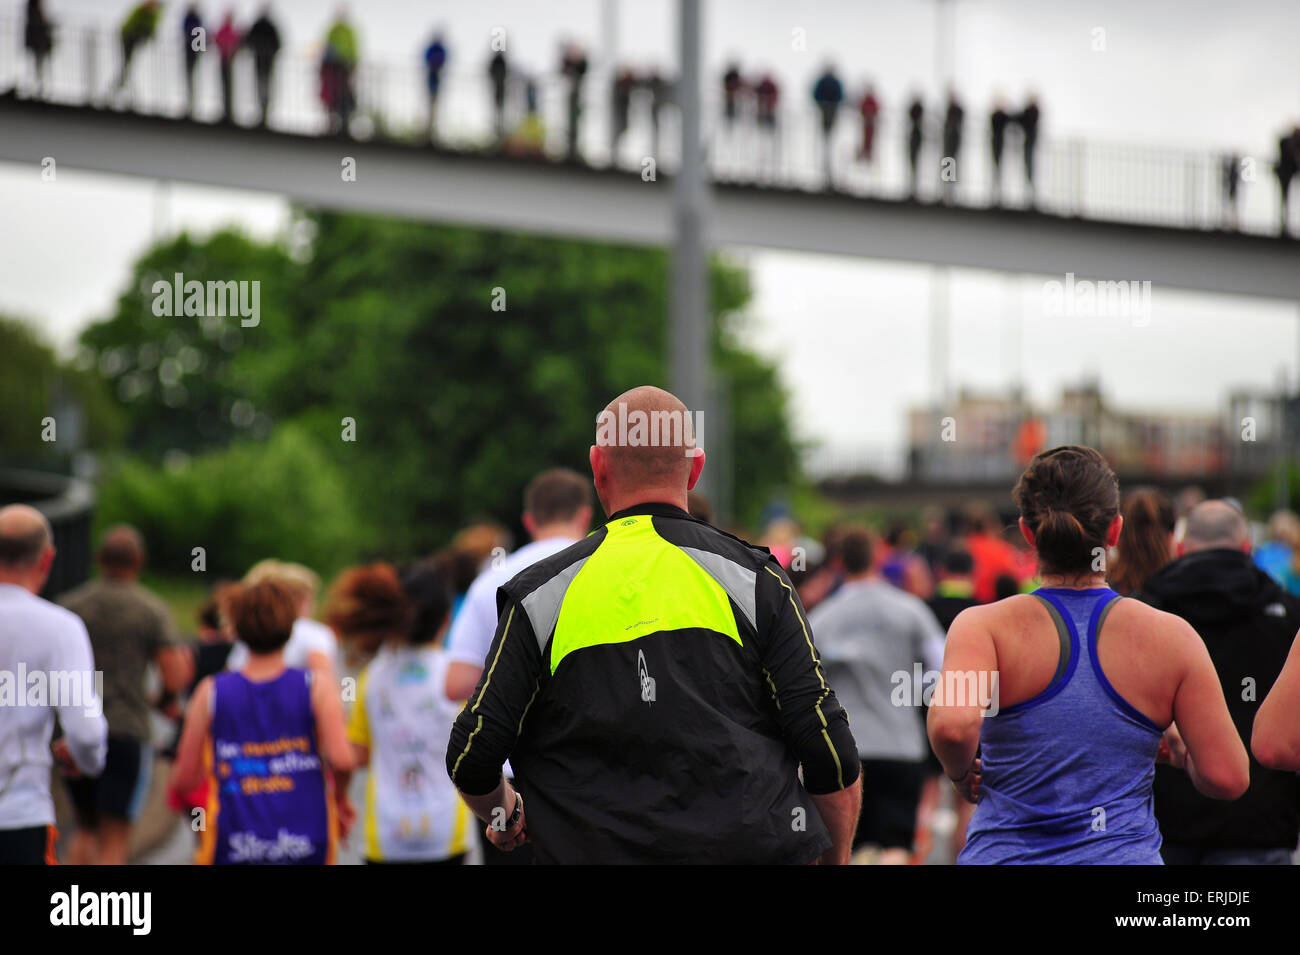 Runners participate in the Bristol 10k race. - Stock Image